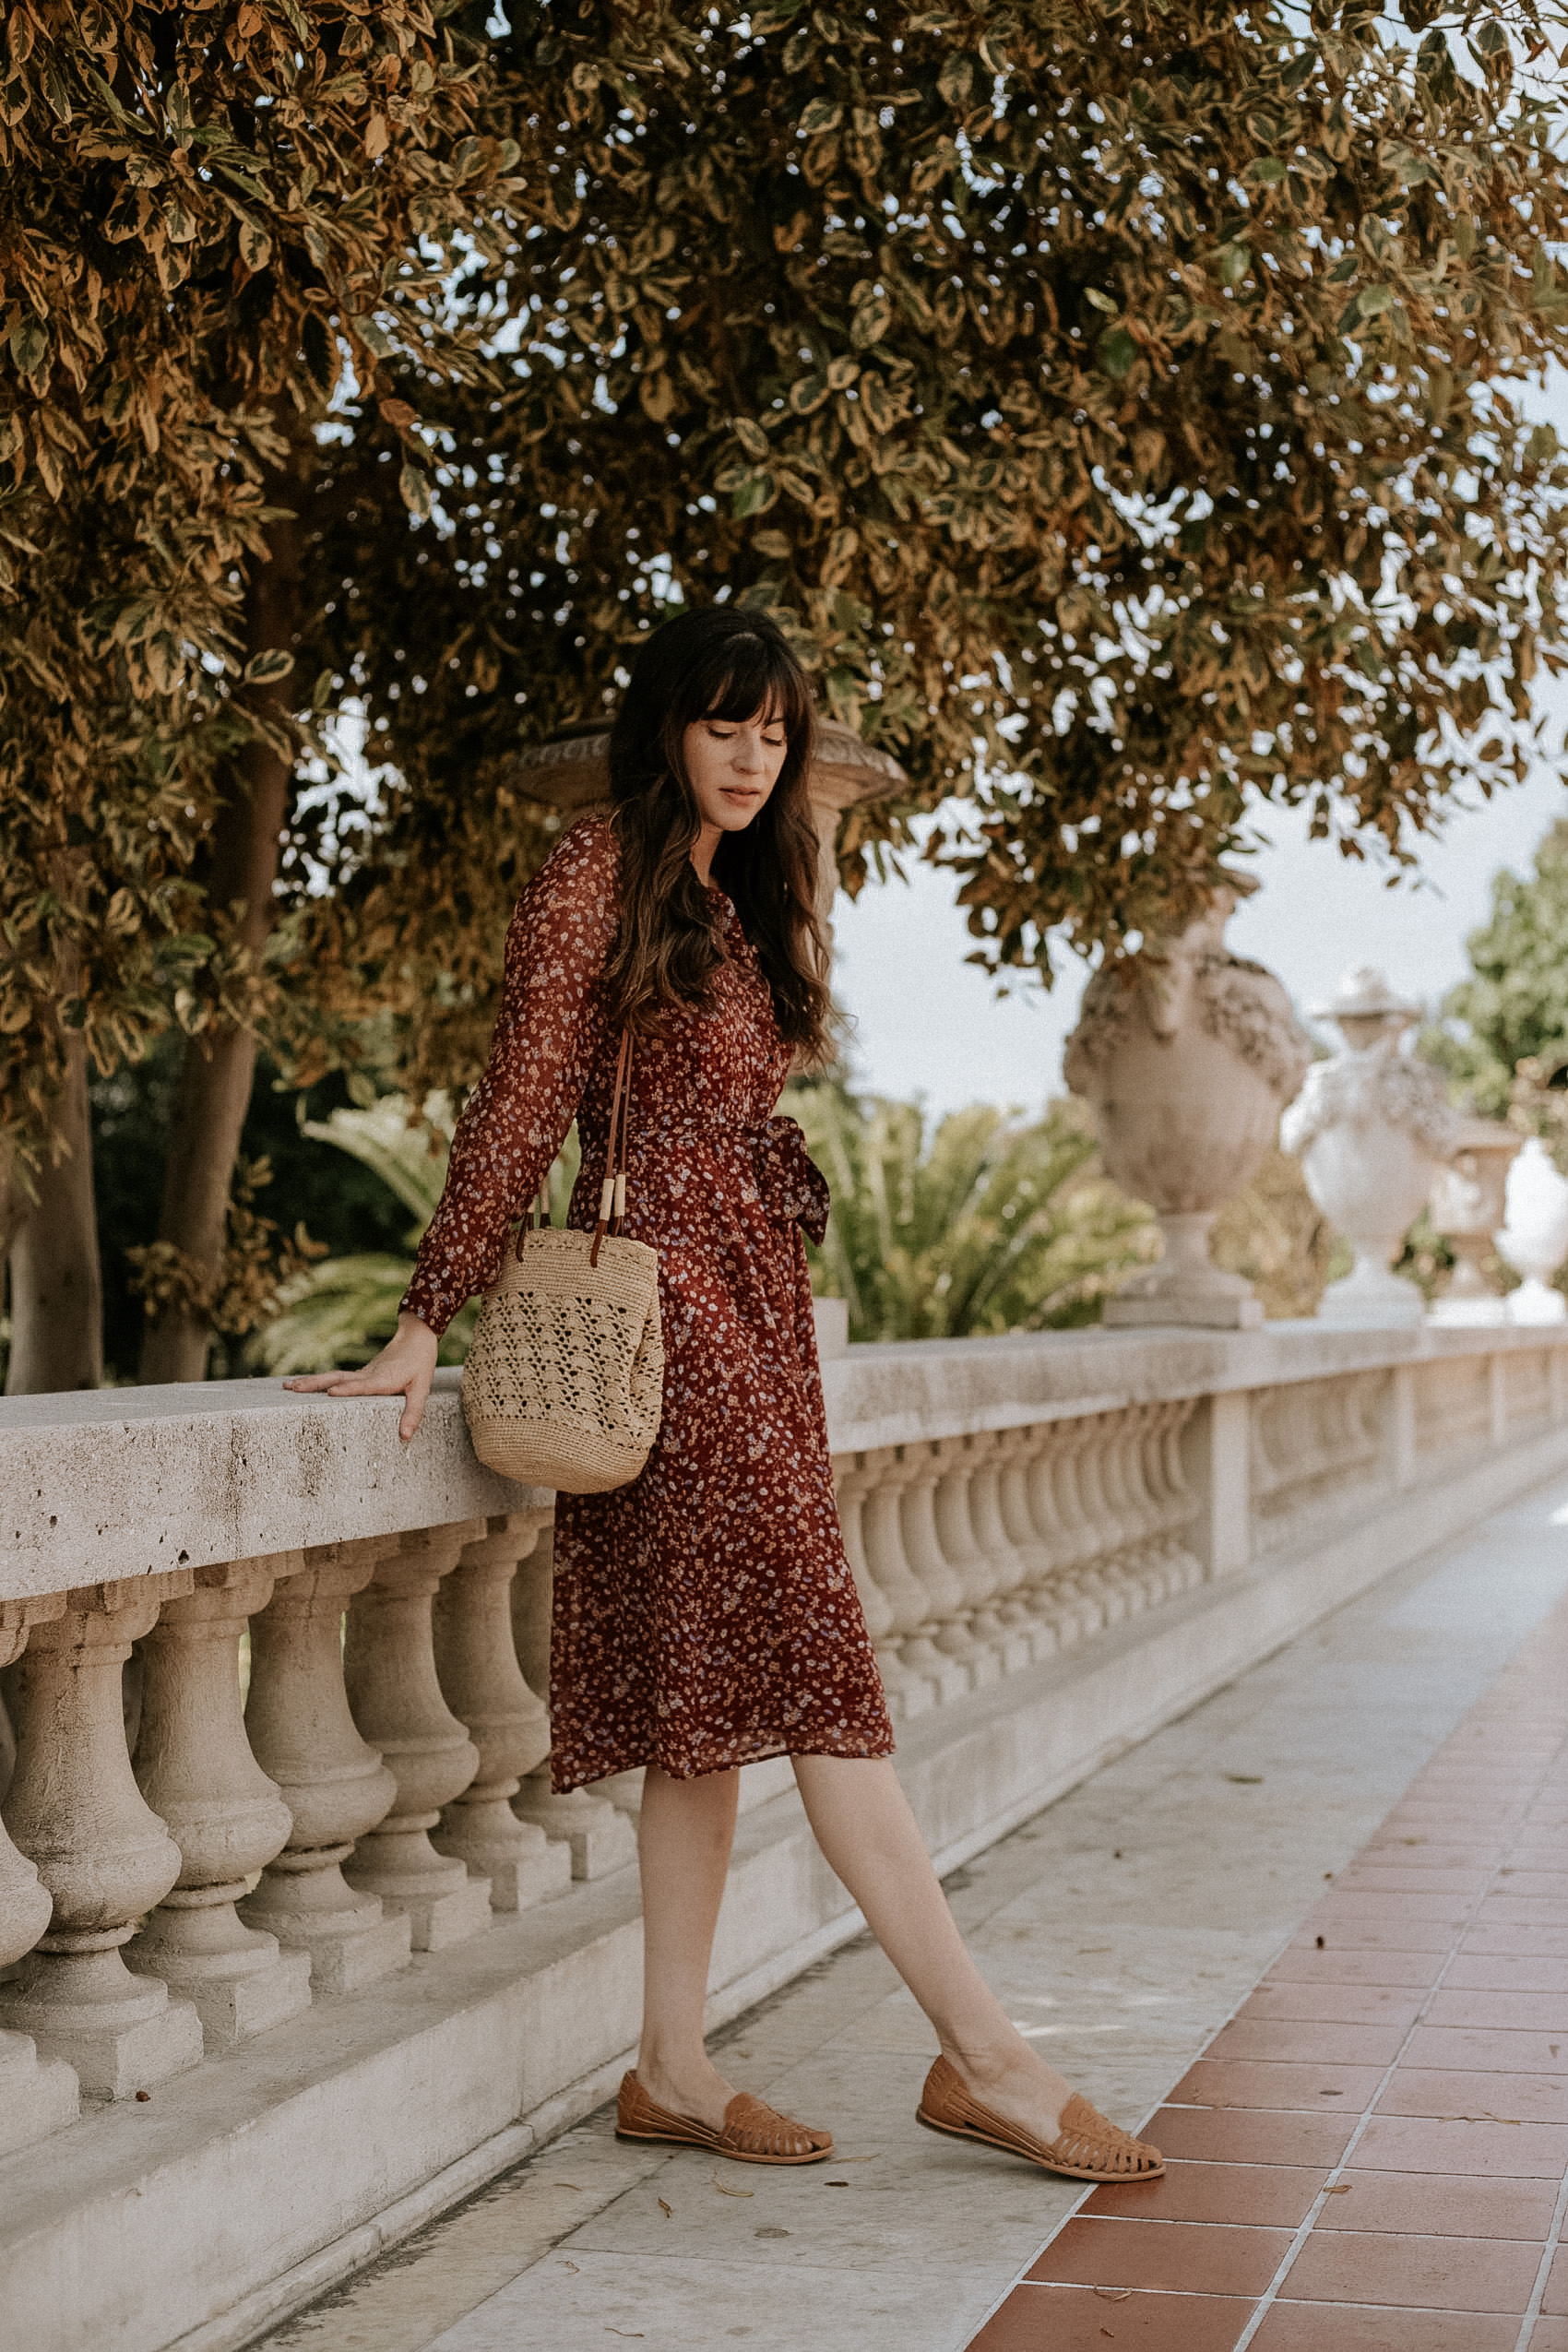 Nisolo Huarache Sandals with Sezane Alix Dress on woman standing against wall